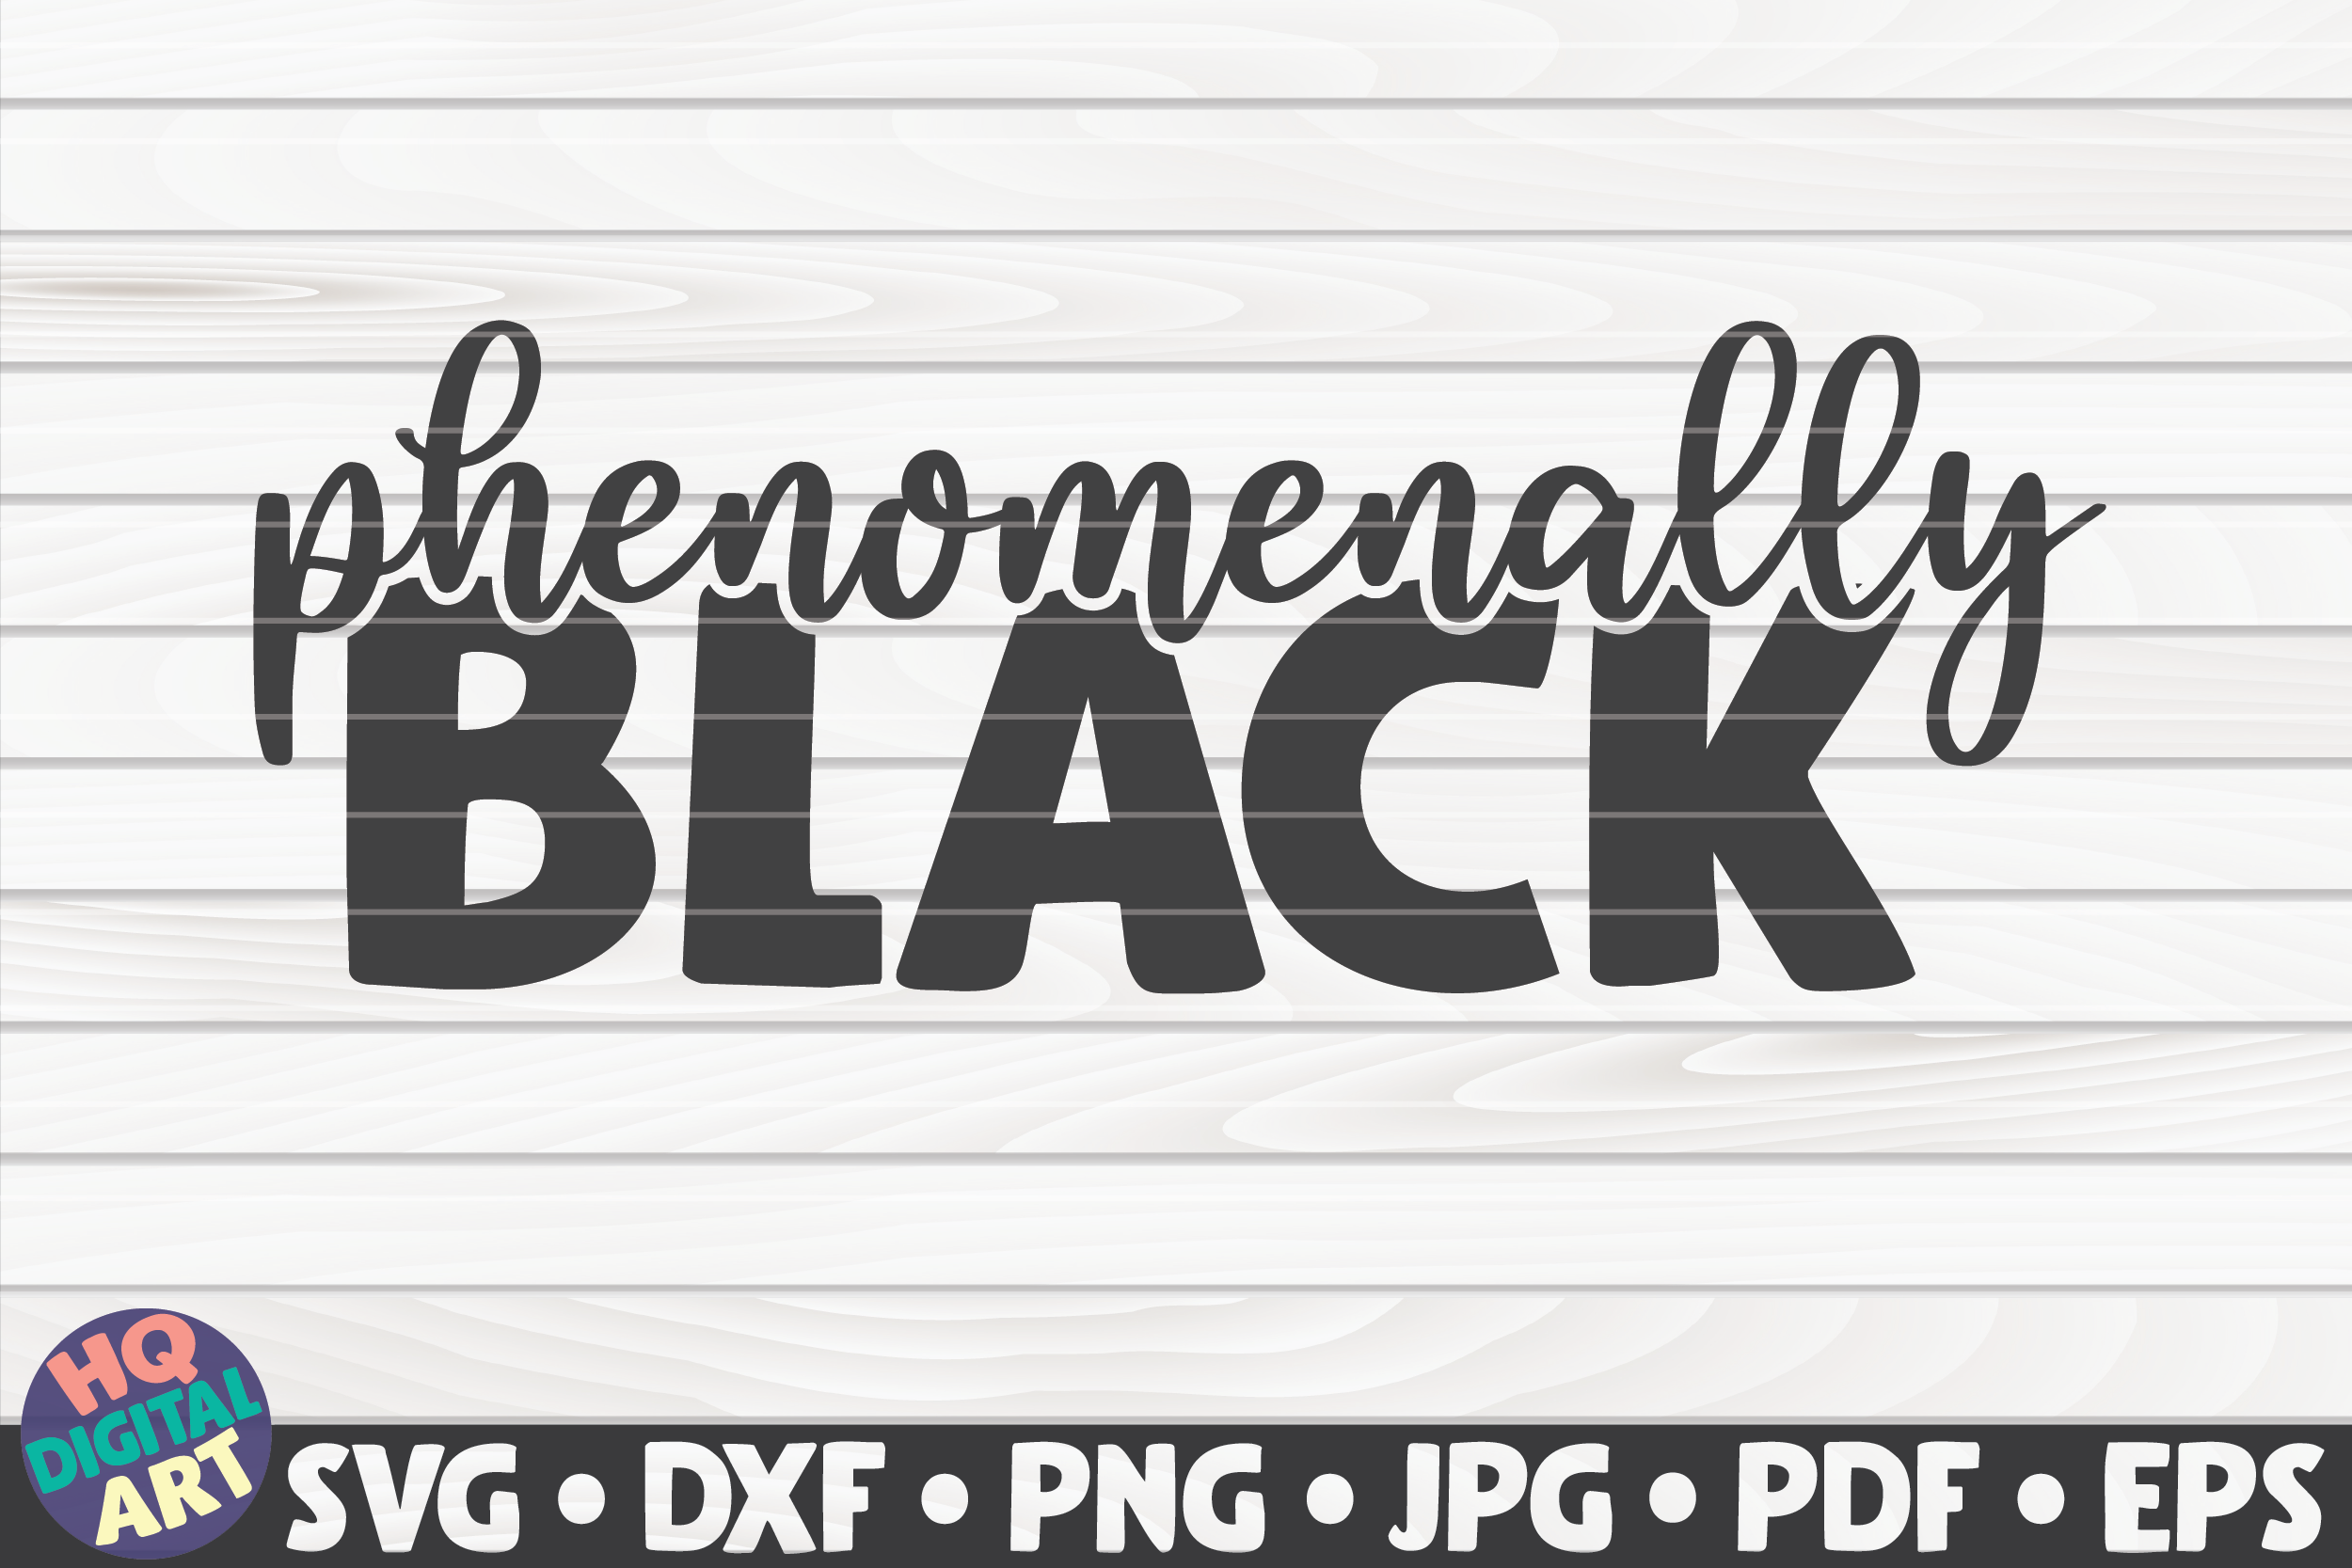 Download Free Phenomenally Black Blm Quote Graphic By Mihaibadea95 for Cricut Explore, Silhouette and other cutting machines.